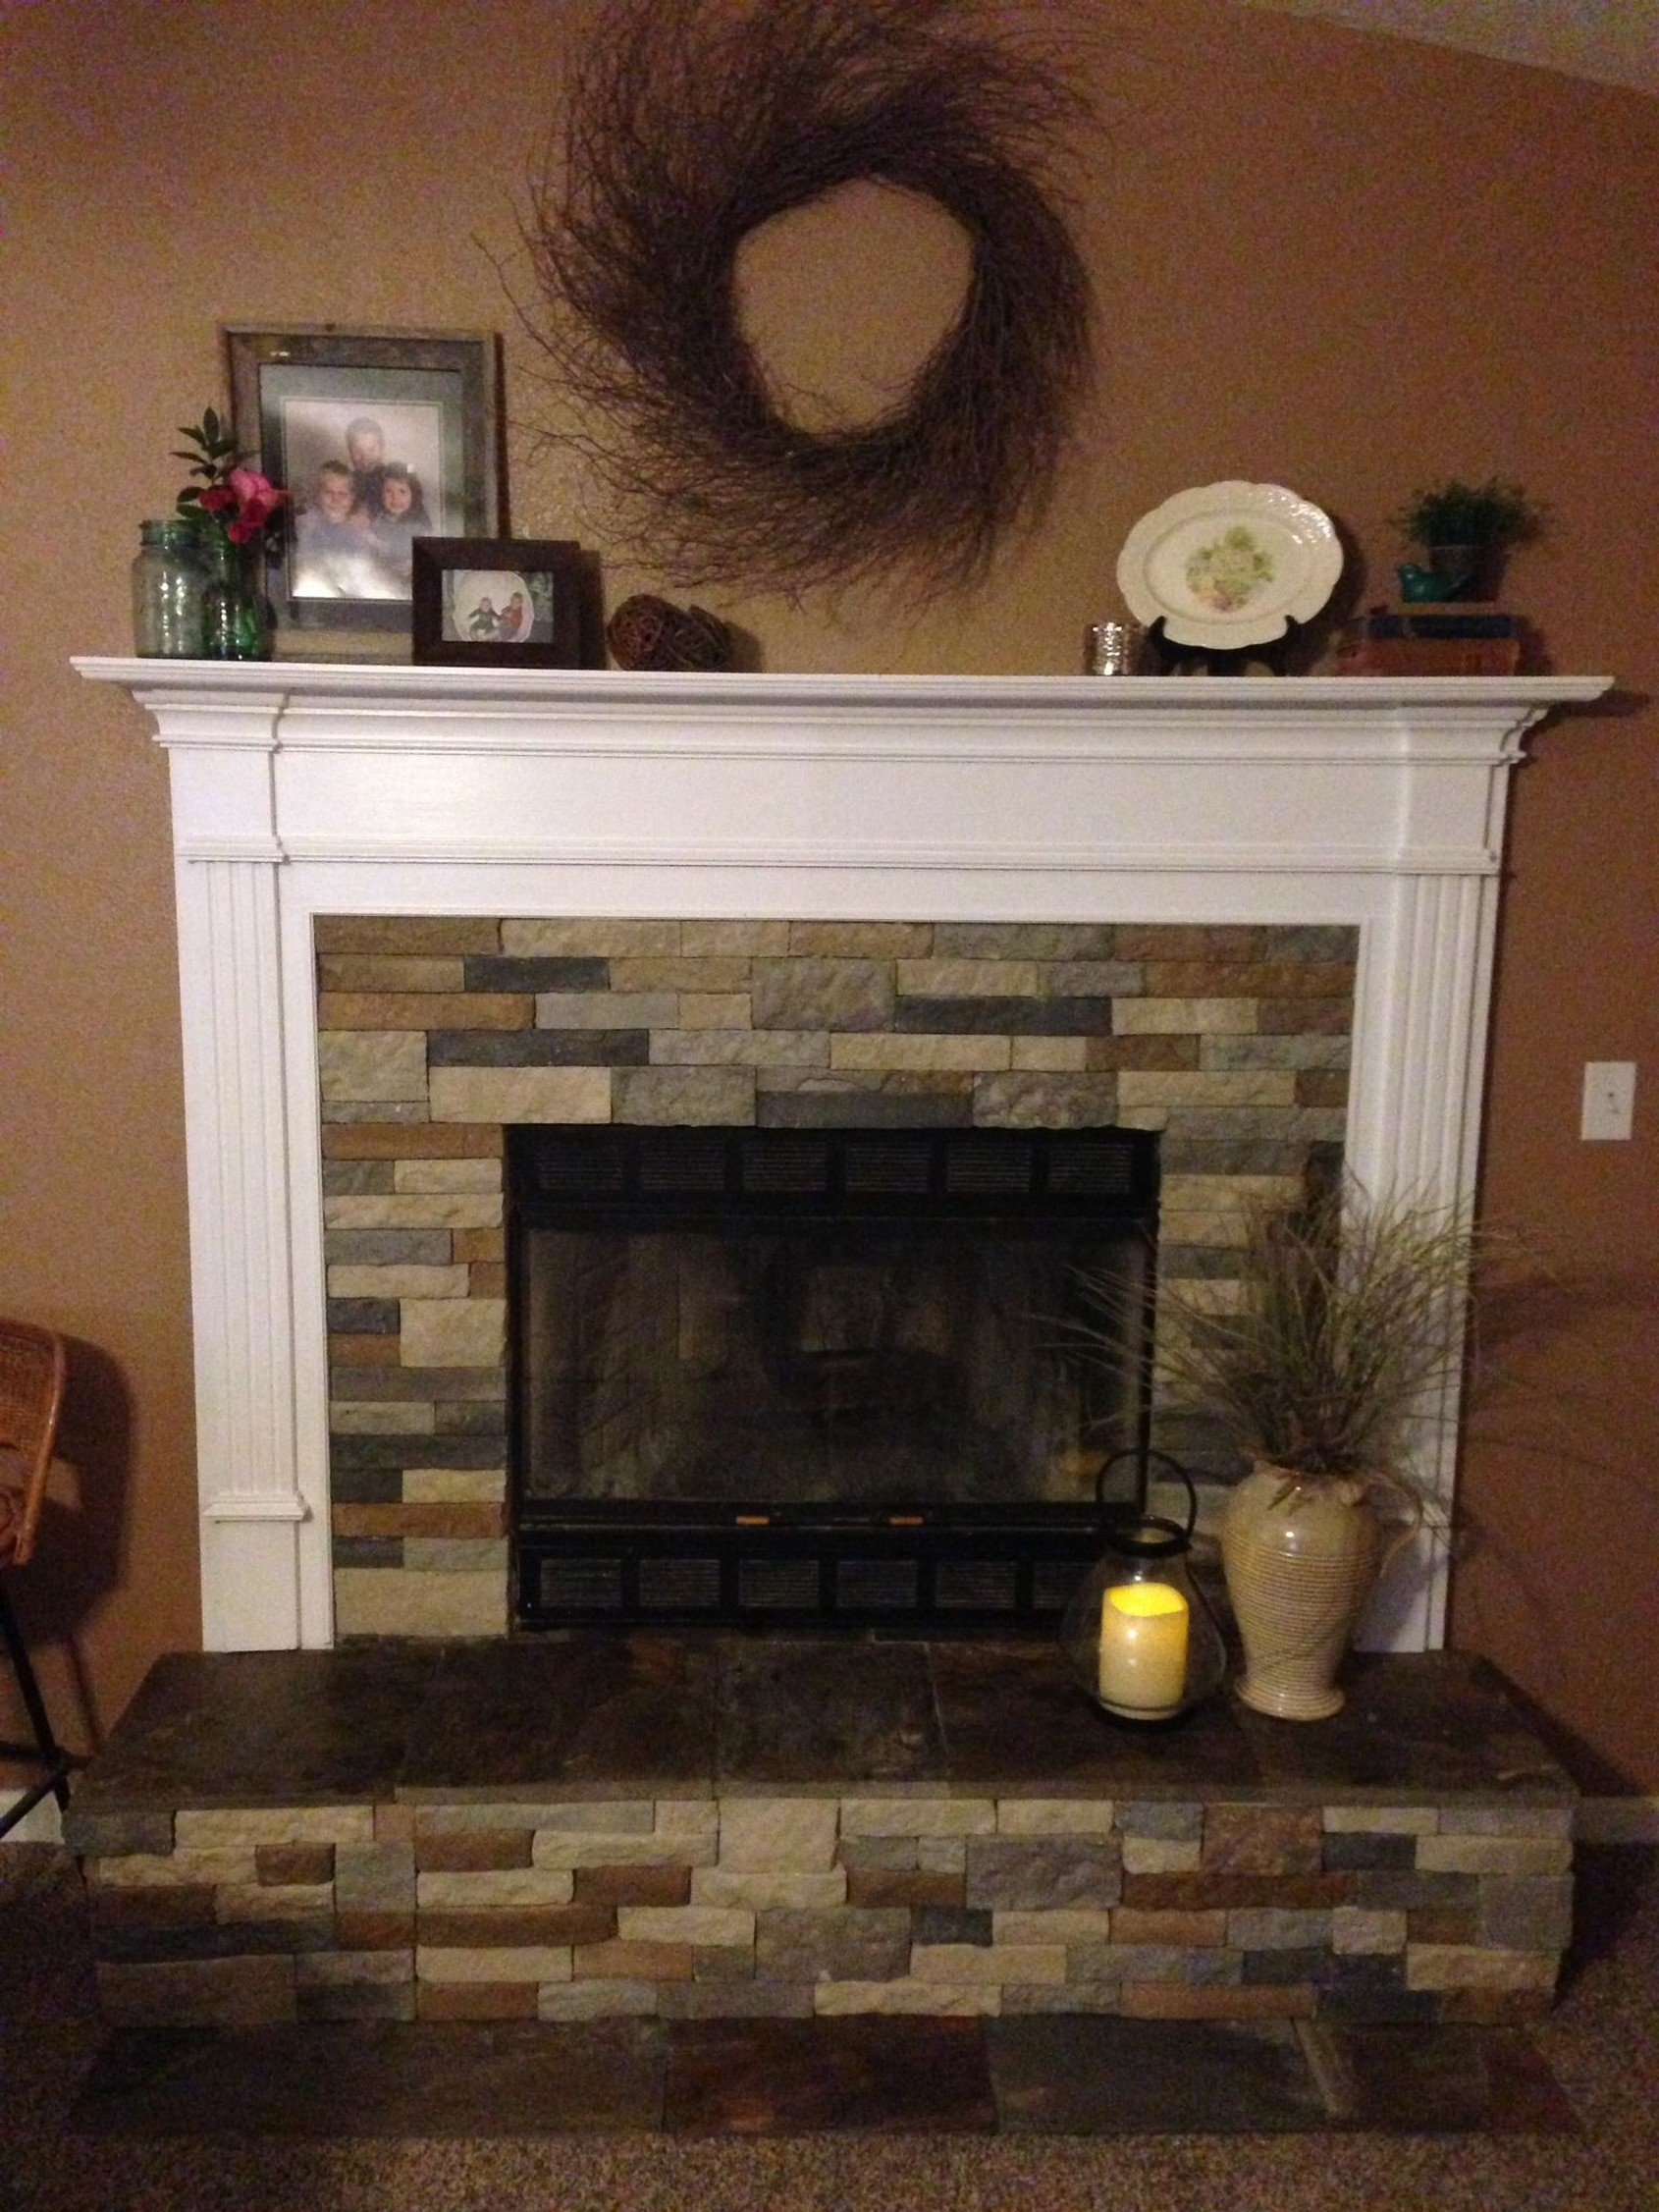 76 Stone Fireplaces The Hearth Is The Heart of The Home 37